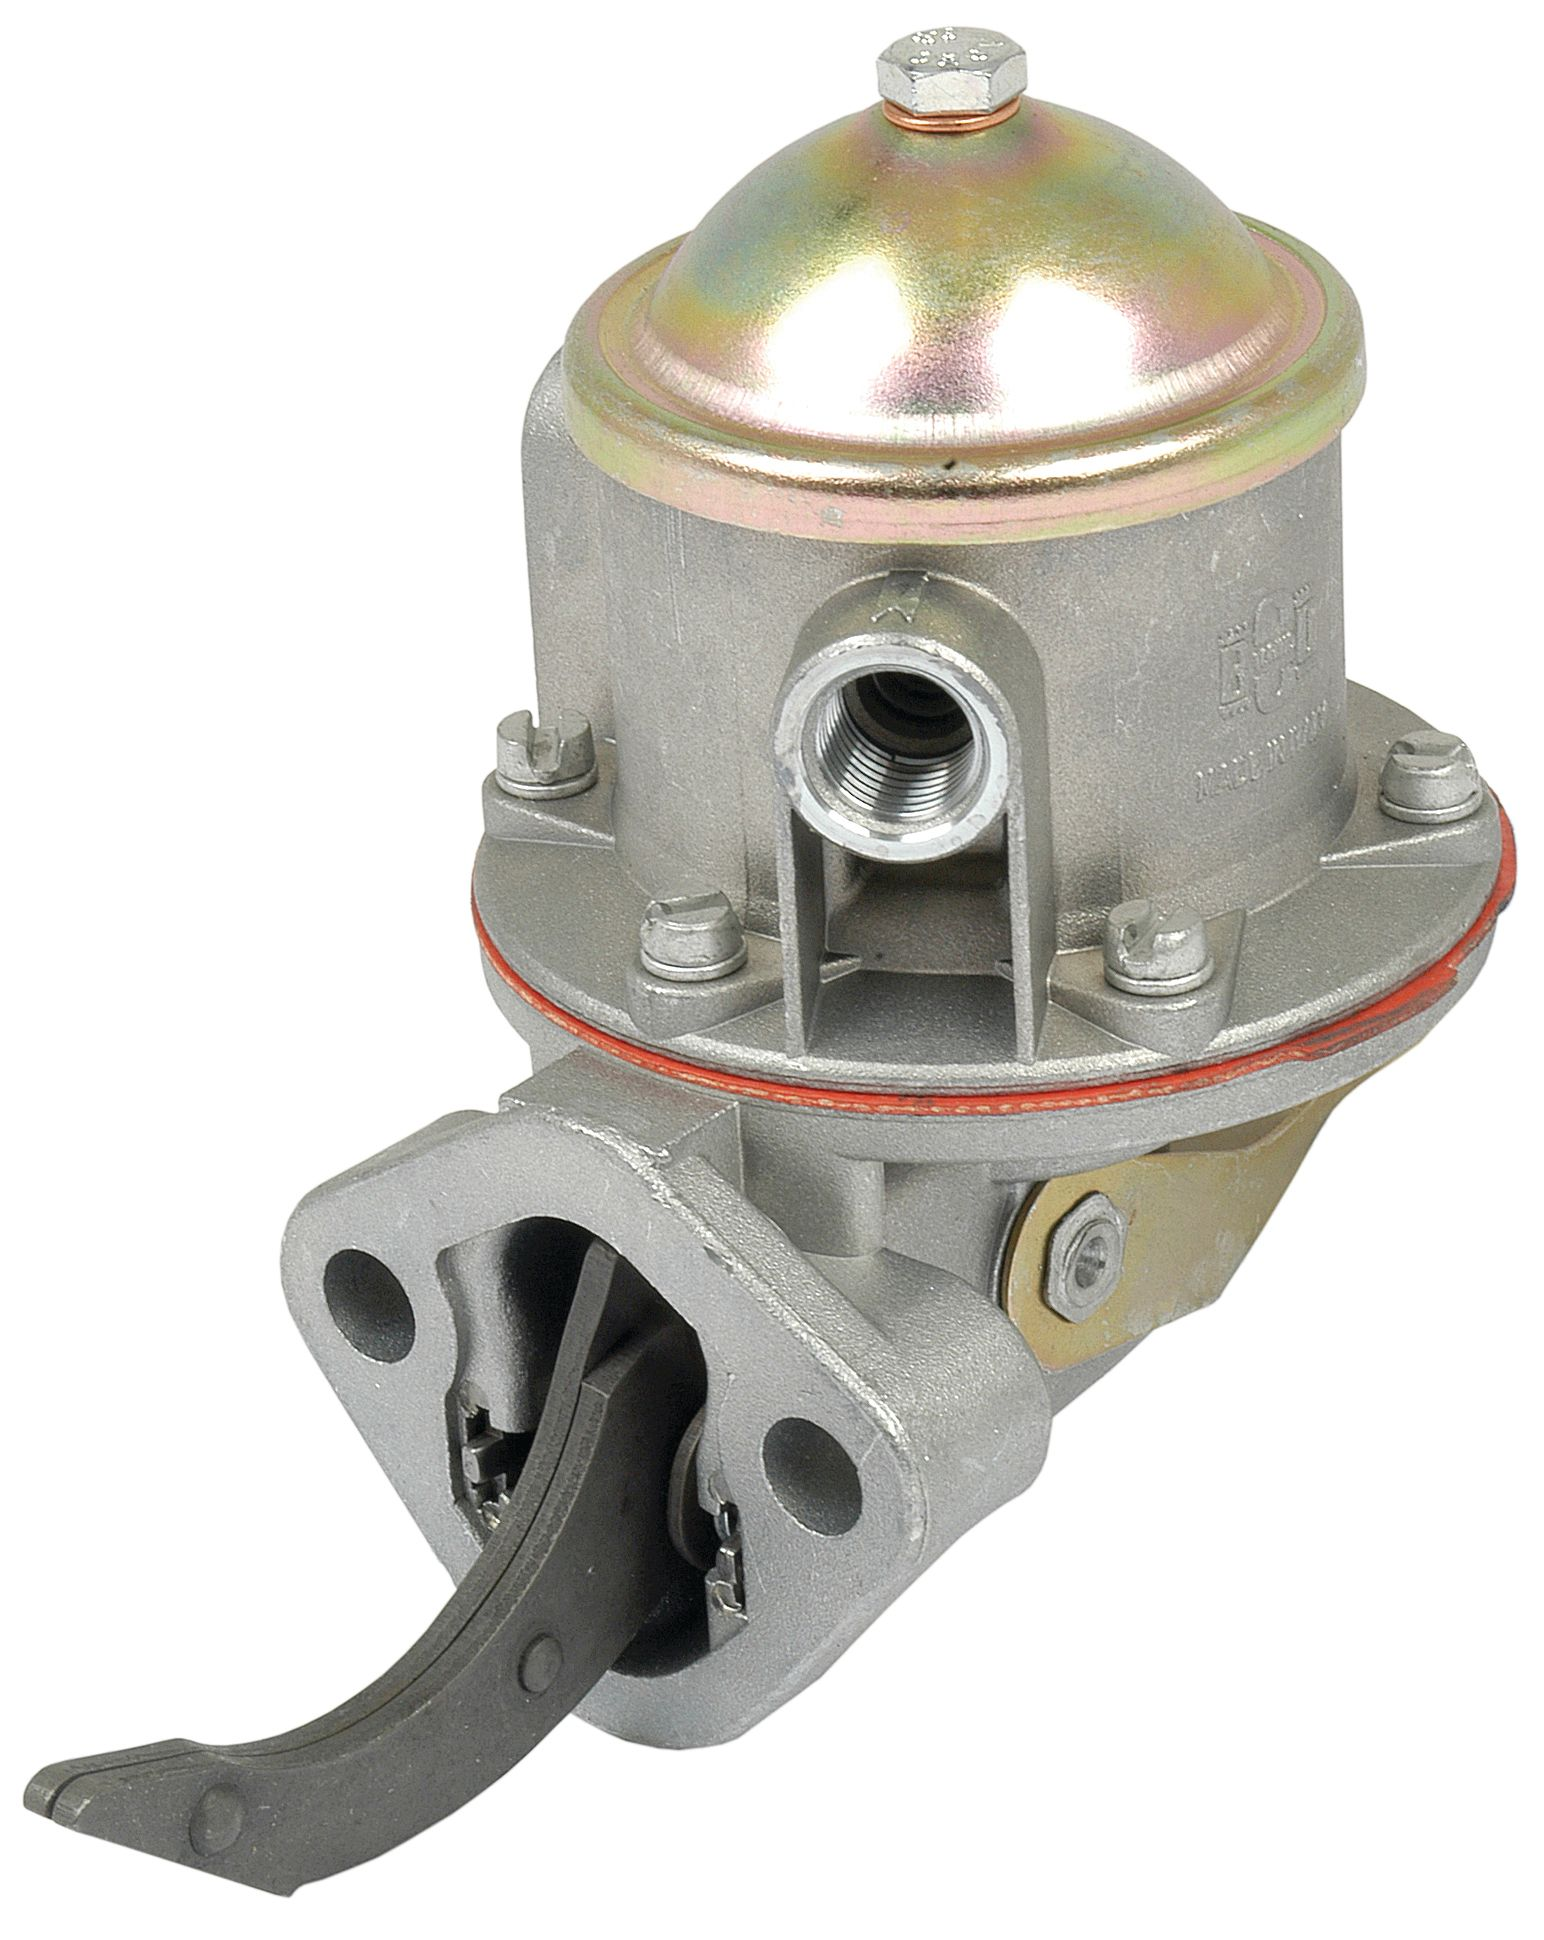 WHITE/OLIVER FUEL PUMP (2 HOLE)